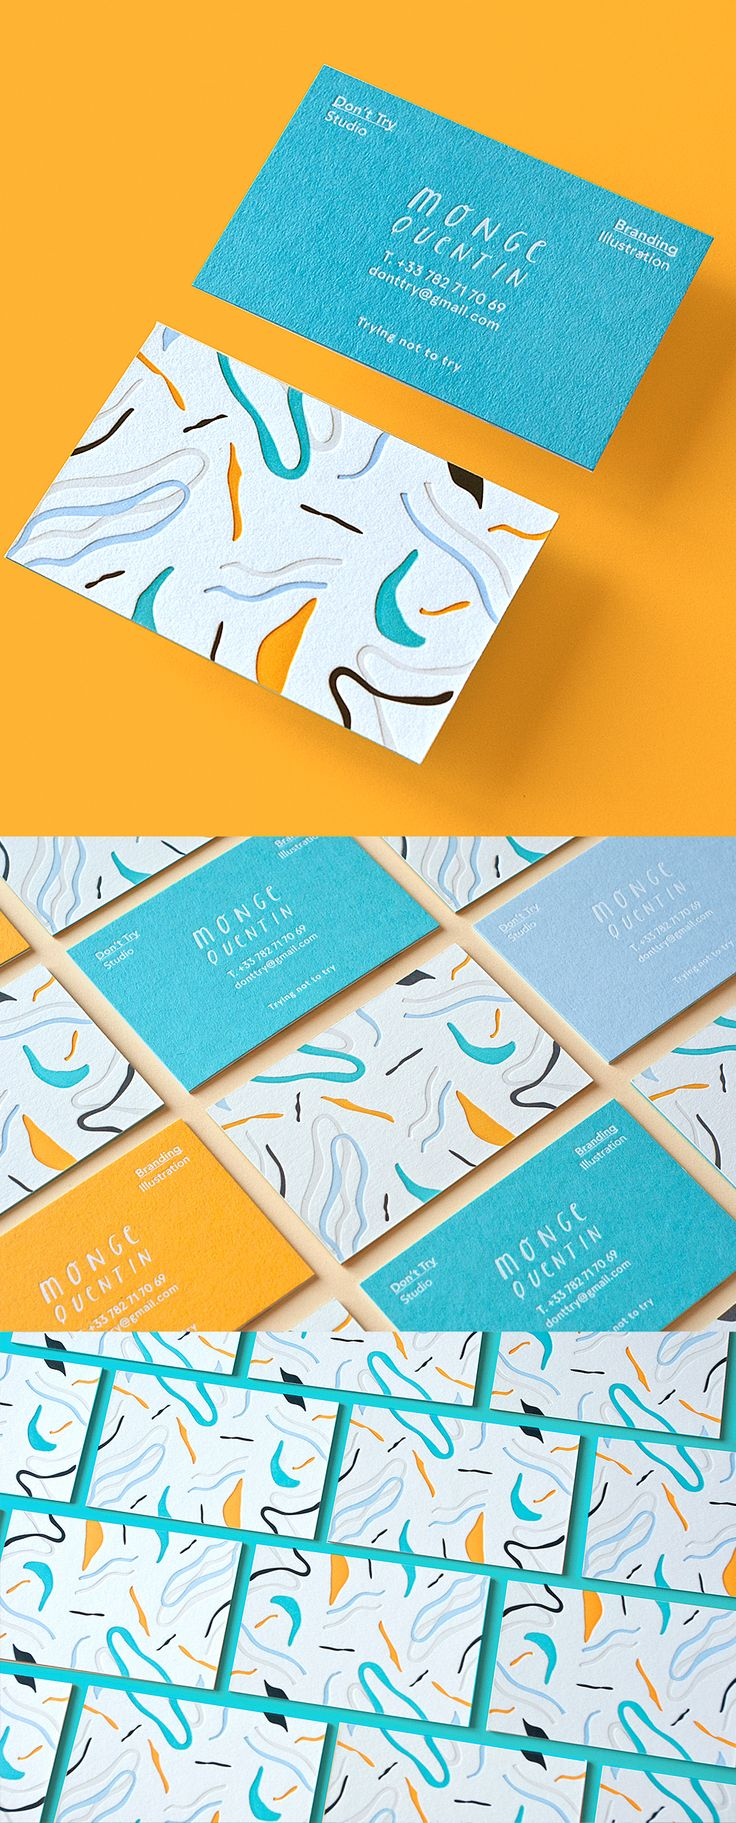 We're showing off our new Colour Collection stocks with the help of a fabulous design submitted by Don't Try Studio of Paris, France. These amazing business cards feature a custom made 3ply layered stock, 5 colour letterpress and a white foil design. Produced by Jukebox Print Business Card Free Design http://www.plasticcardonline.com